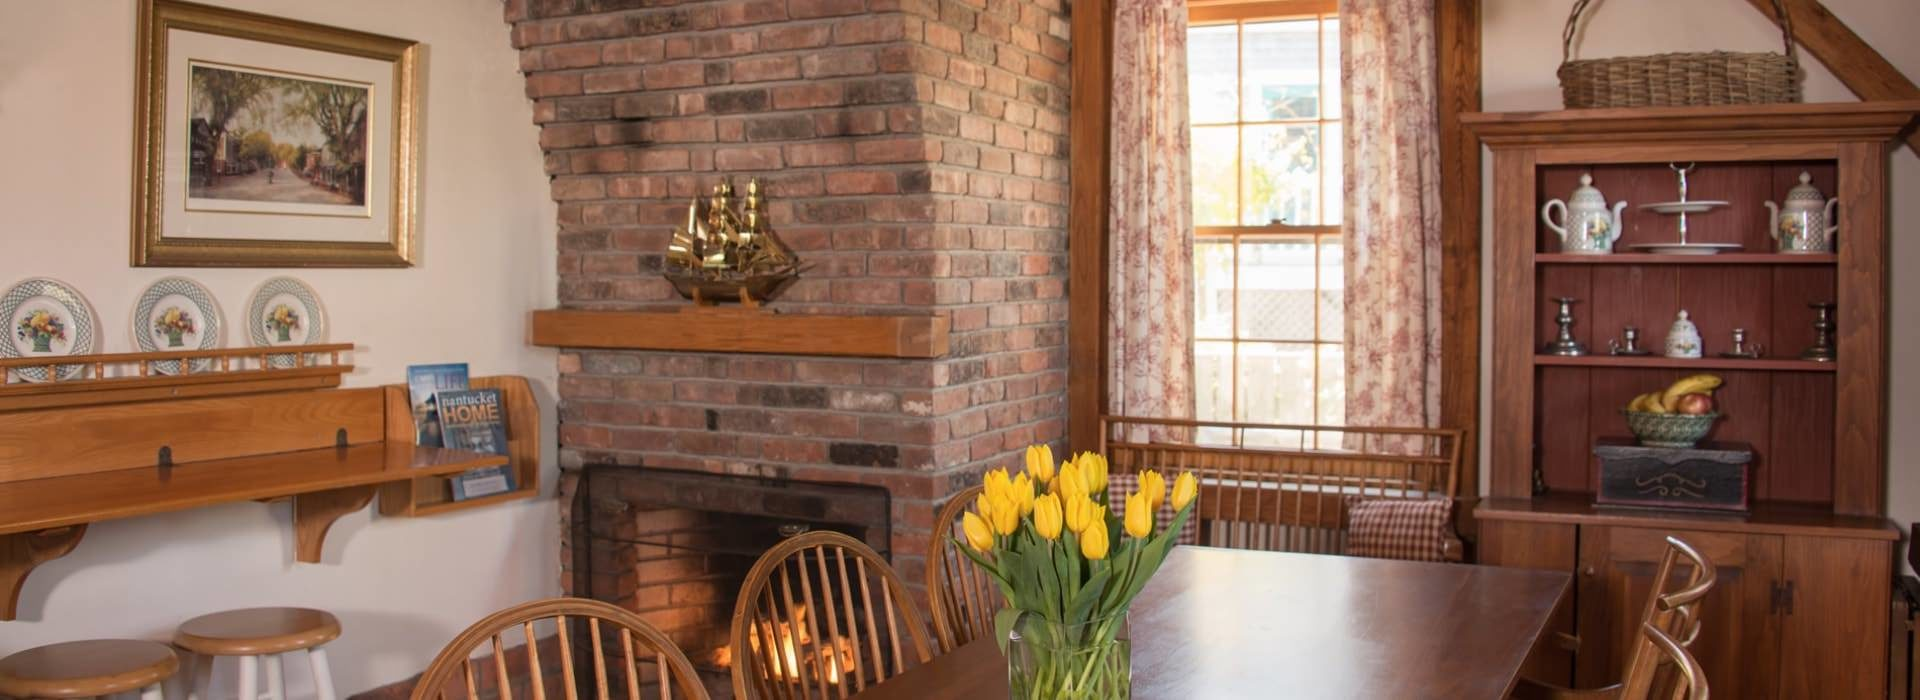 Dining room with large brick fireplace and large wooden table and chairs with yellow tulips in a vase on top